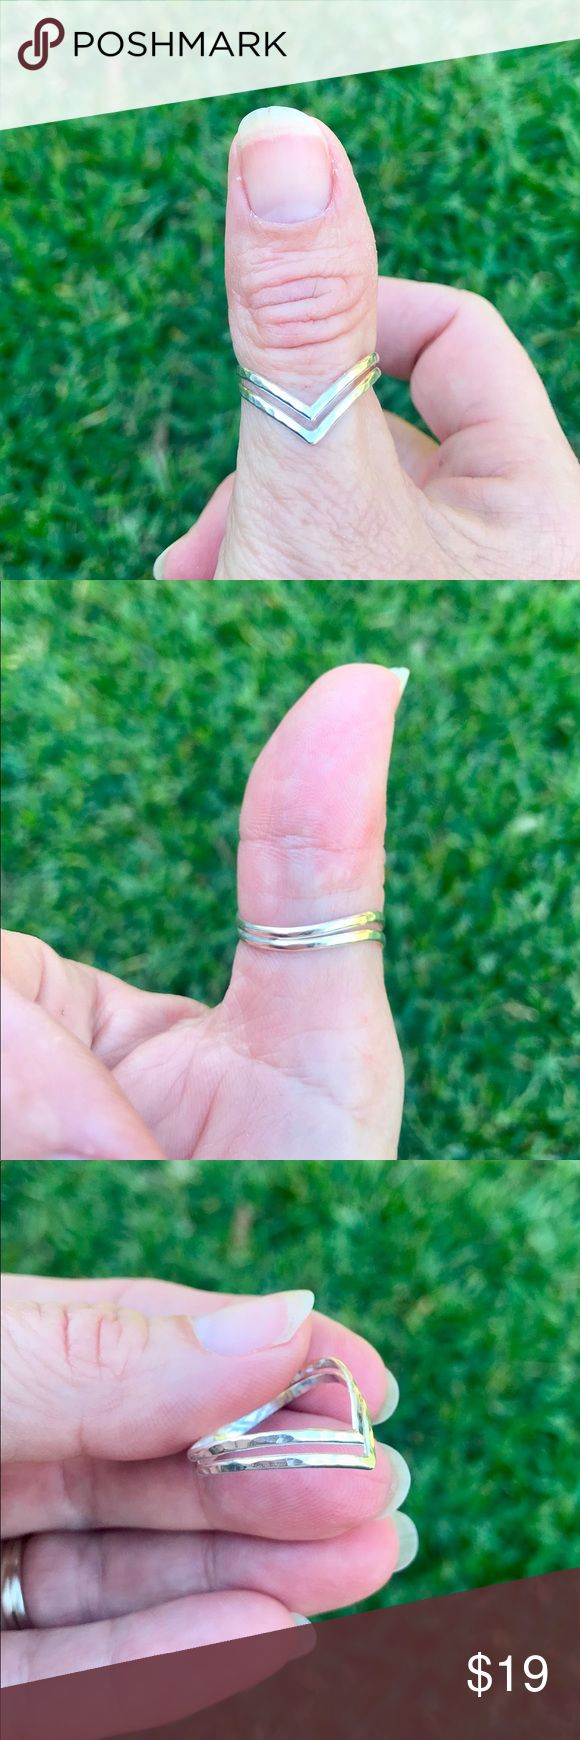 Sterling Silver Hammered Double V Thumb Ring Sterling silver hammered double v thumb ring in various sizes from size 3 to 12. It is not stamped sterling silver. This ring can be worn as a ring, thumb ring or toe ring. Jewelry Rings